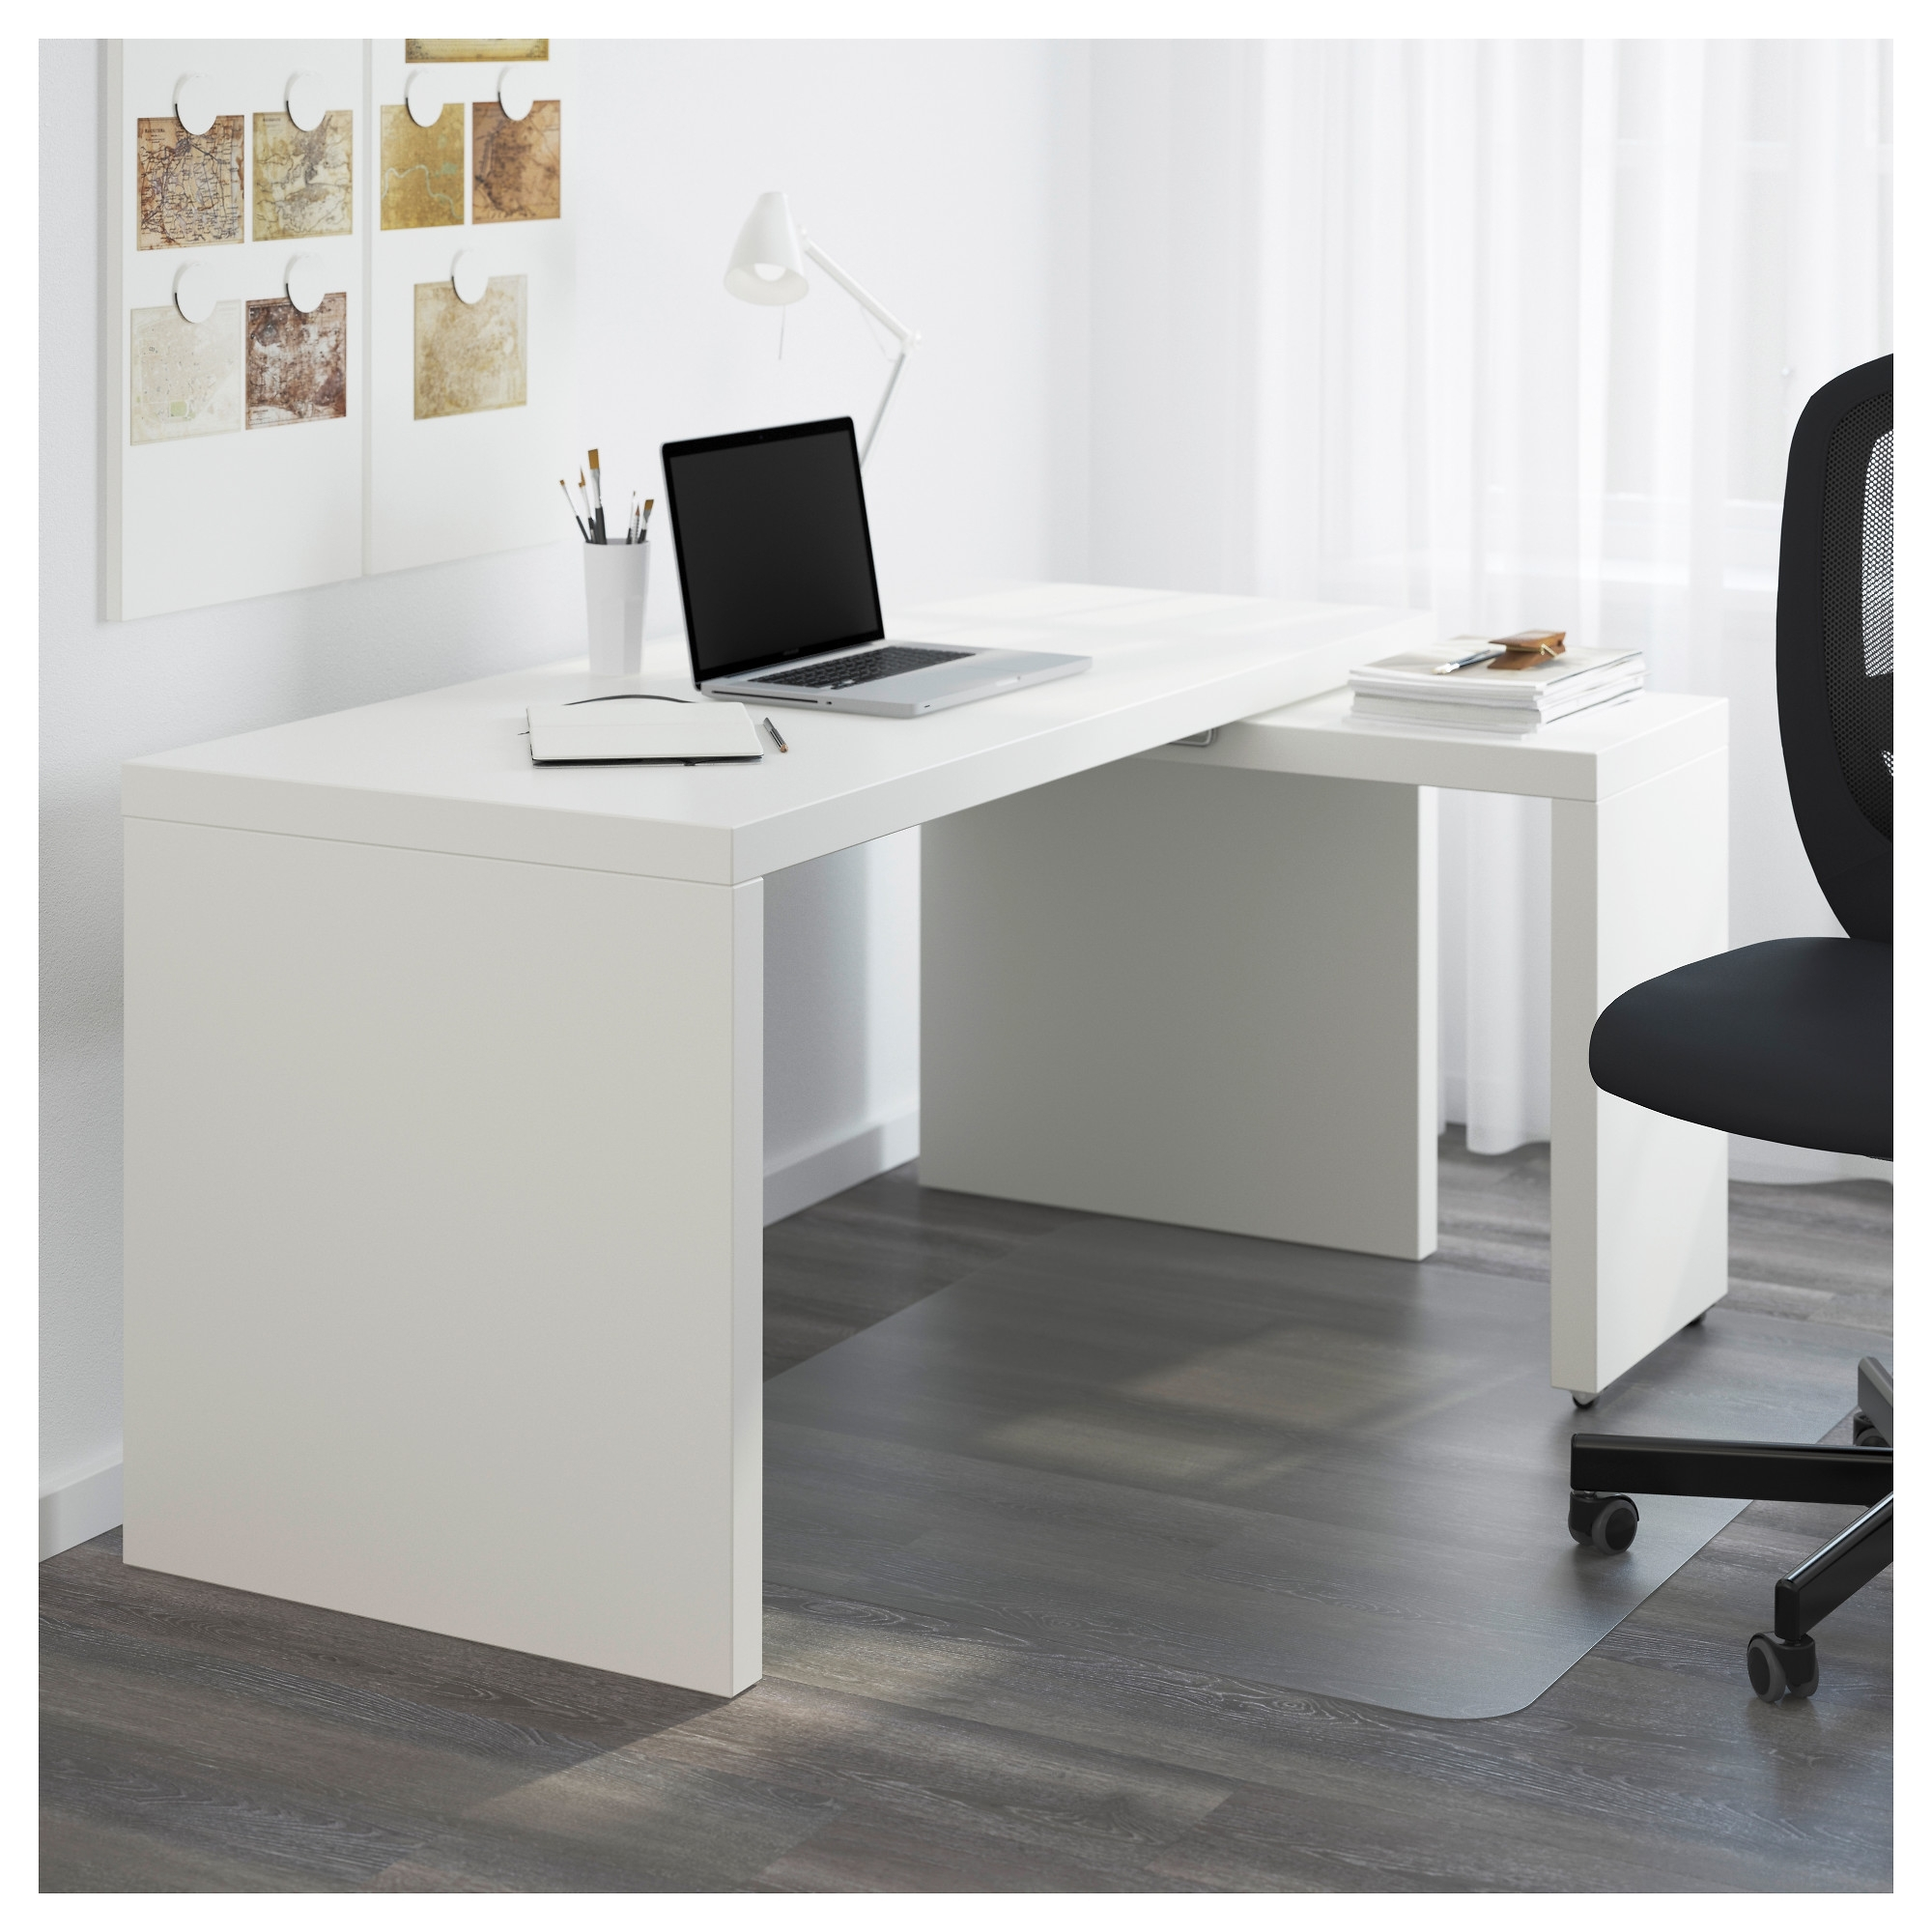 Malm Desk With Pull Out Panel – White – Ikea In Most Popular White Computer Desks (View 6 of 20)